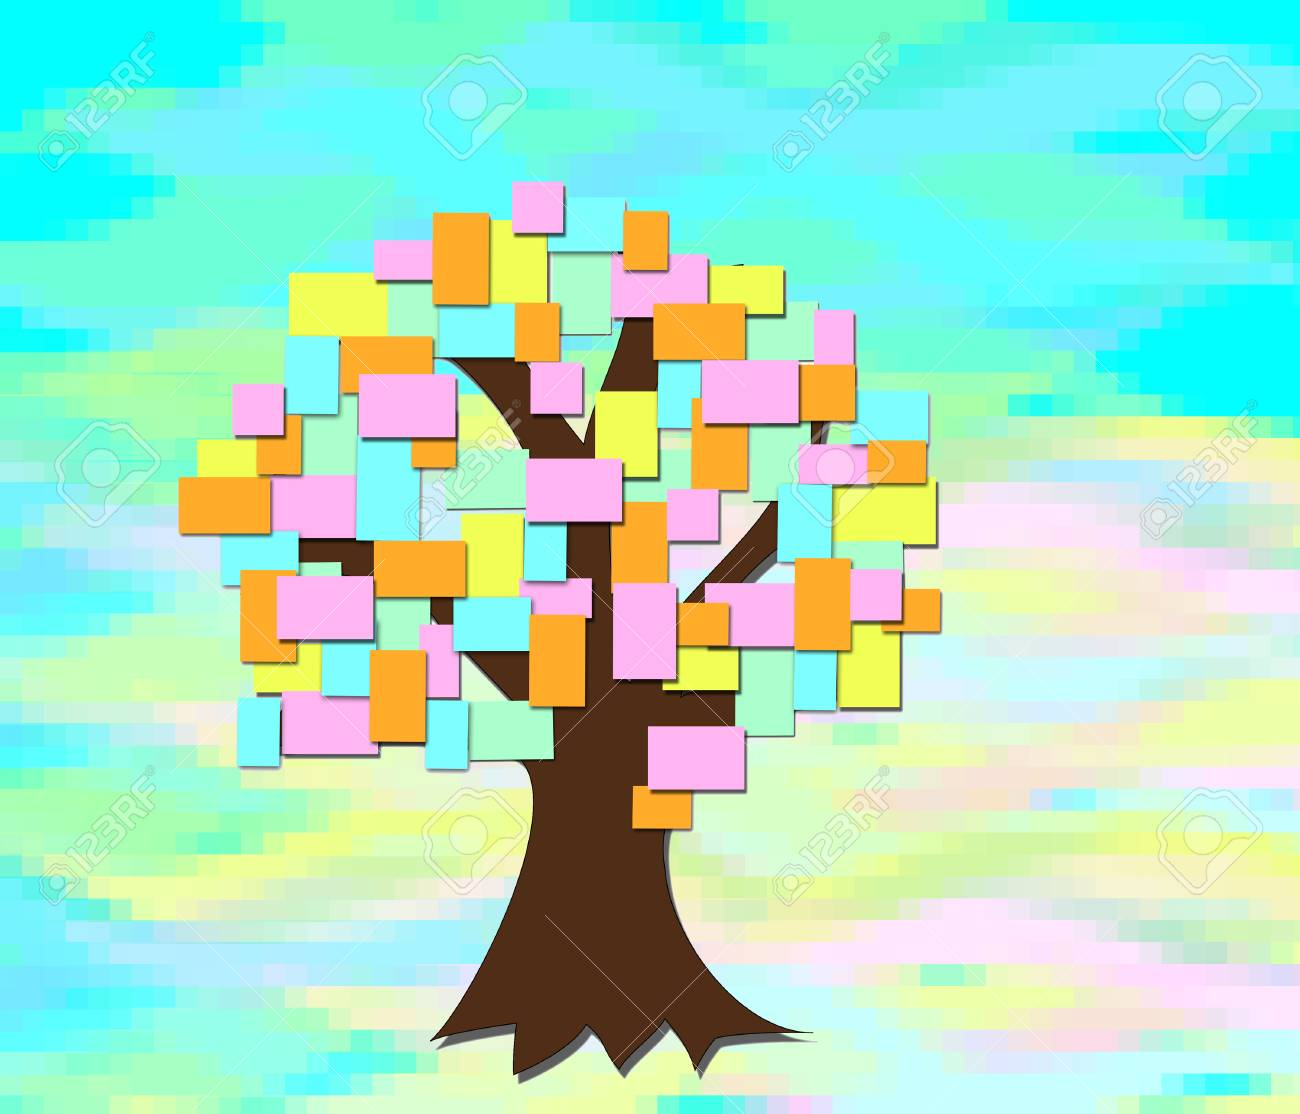 The Tree Grows With Colored Sheets Of Paper On An Abstract ...